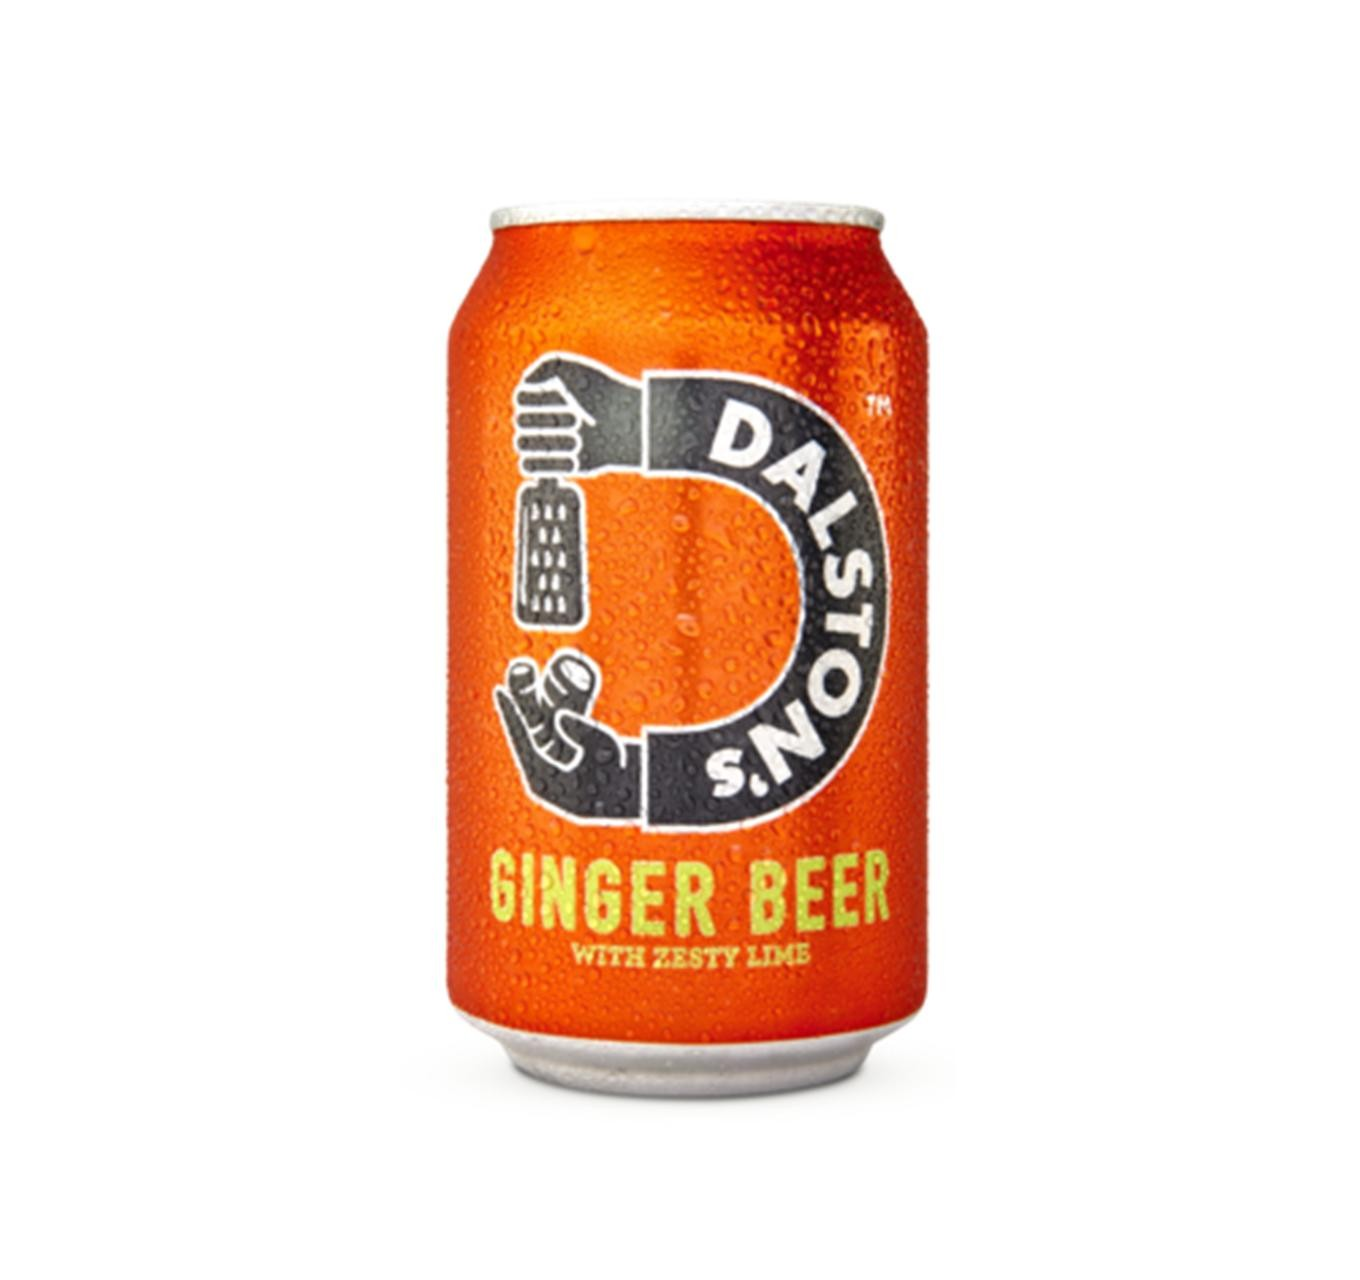 Dalston's Ginger Beer 330ml